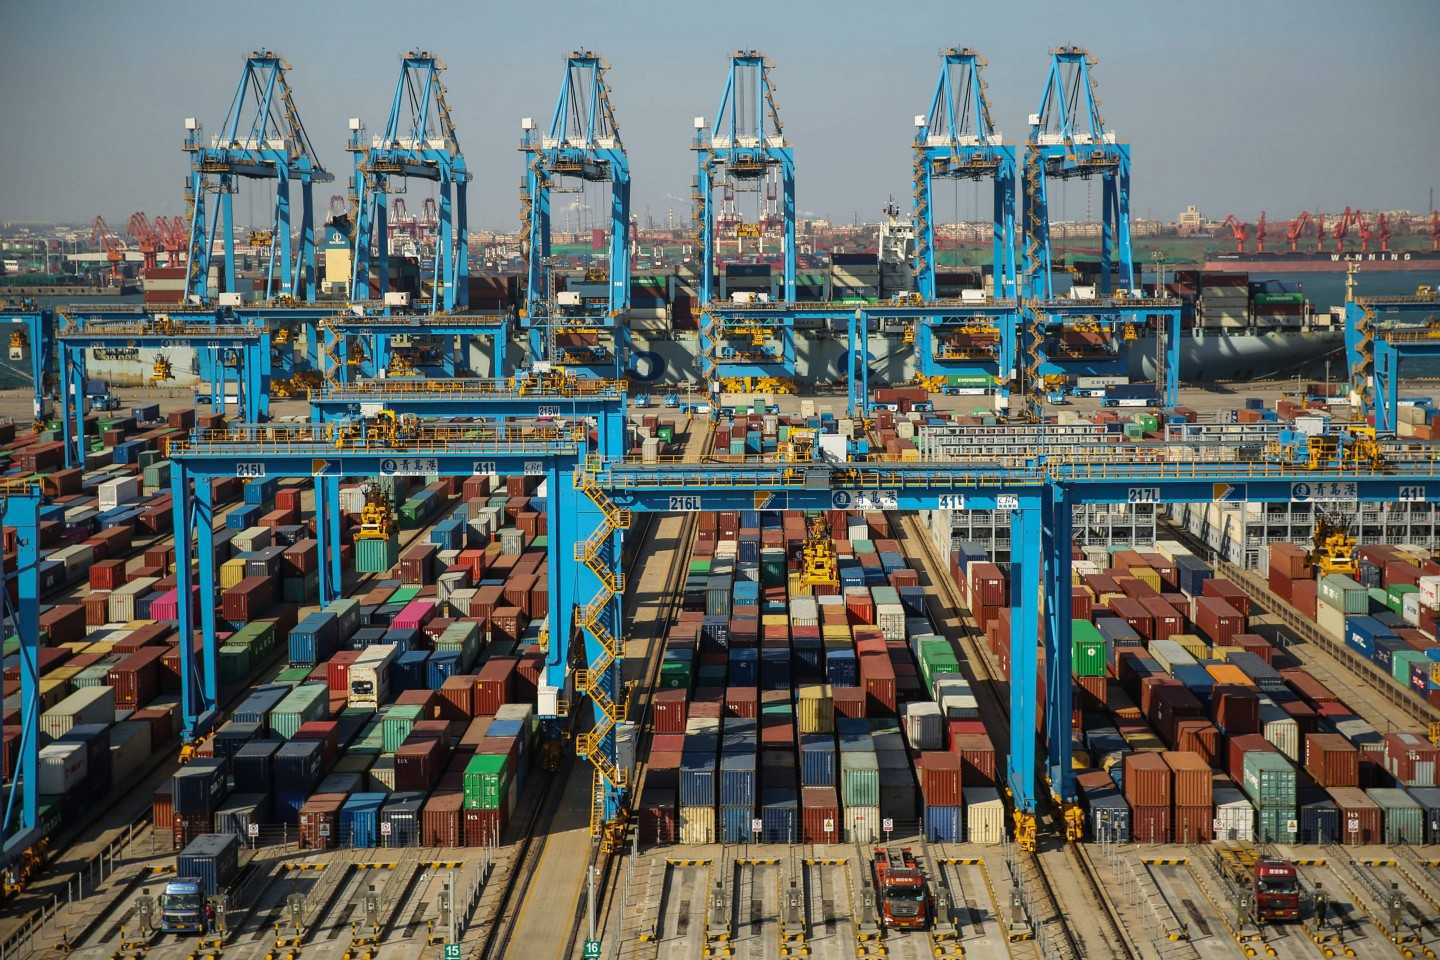 China's economic miracle has transformed a poor country into the second largest economy in the world. This file photo taken on November 28, 2019 shows containers stacked up at an automatic dock in Qingdao in China's eastern Shandong province. (STR/AFP)